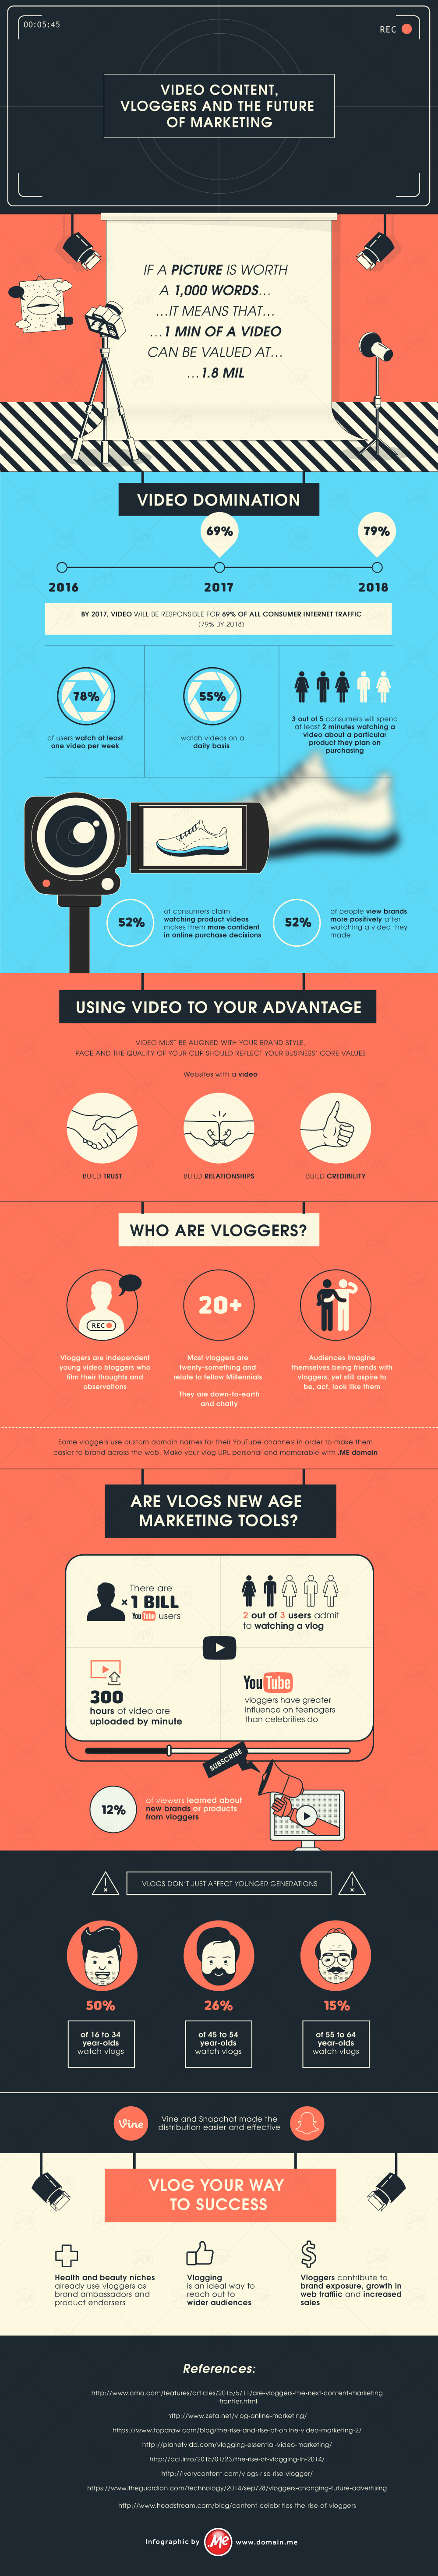 Infographic: Video, Vloggers and the Future of Marekting